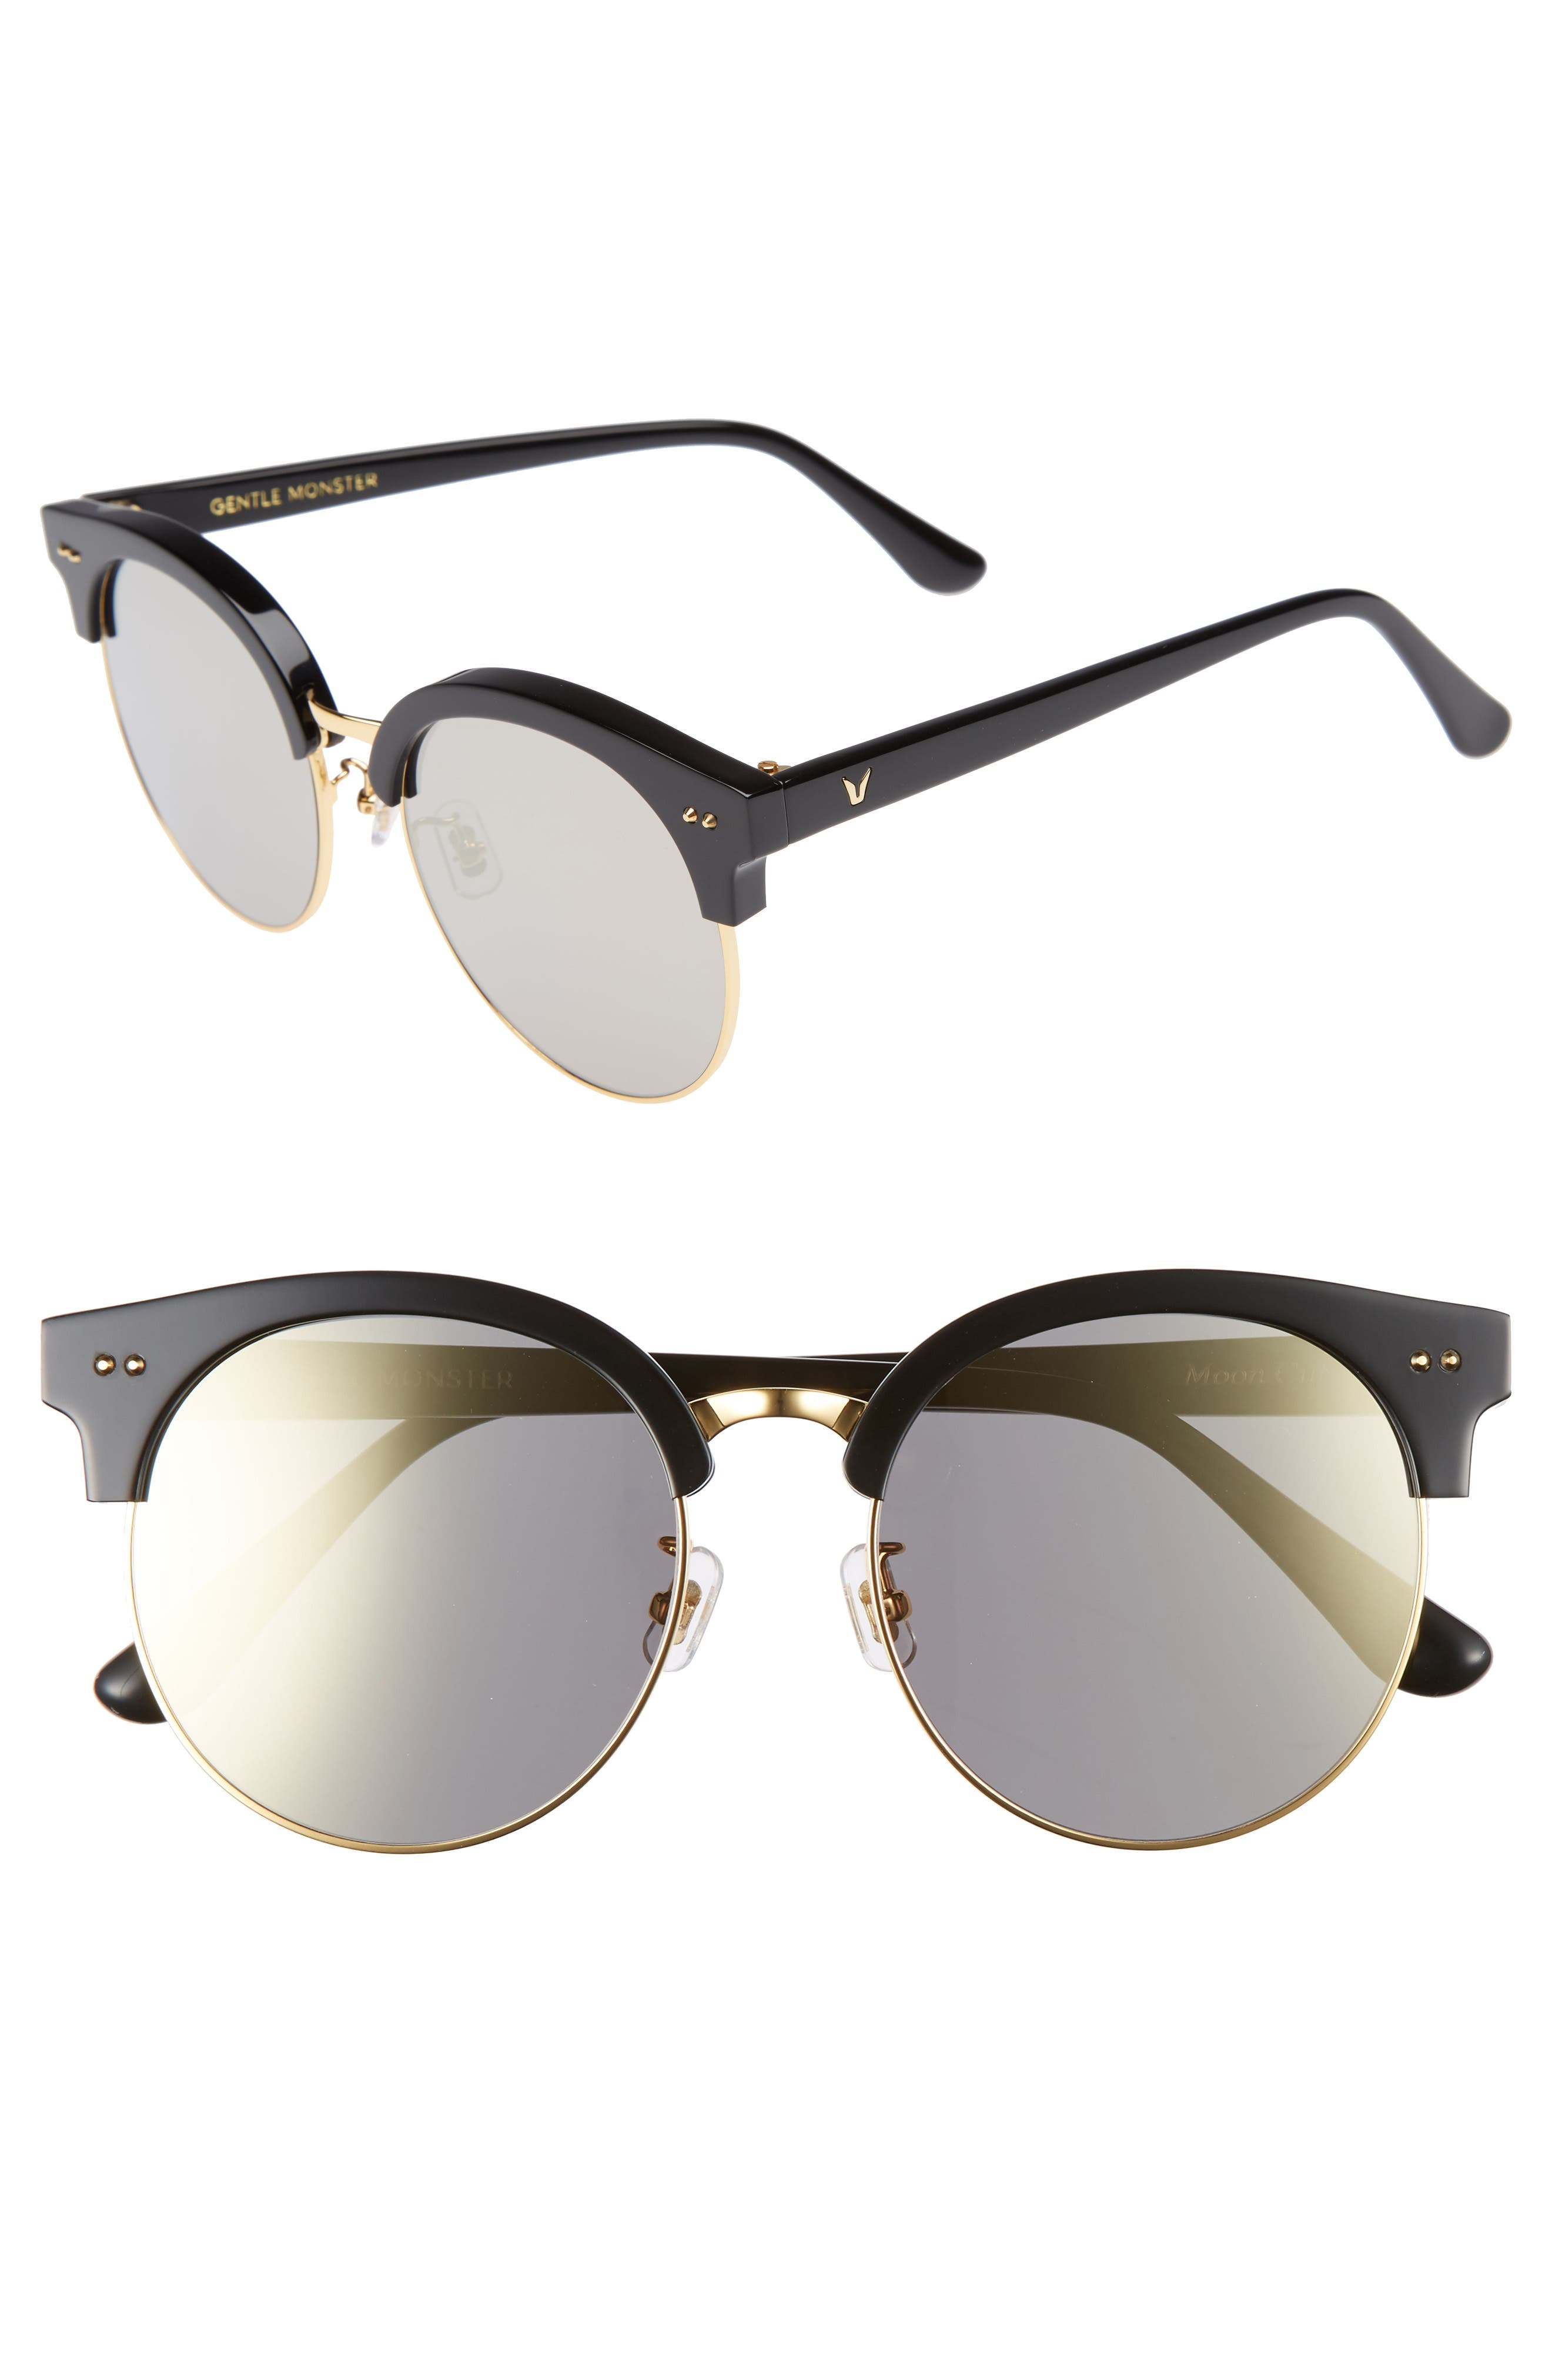 Main Image - Gentle Monster Moon Cut 54mm Rounded Sunglasses